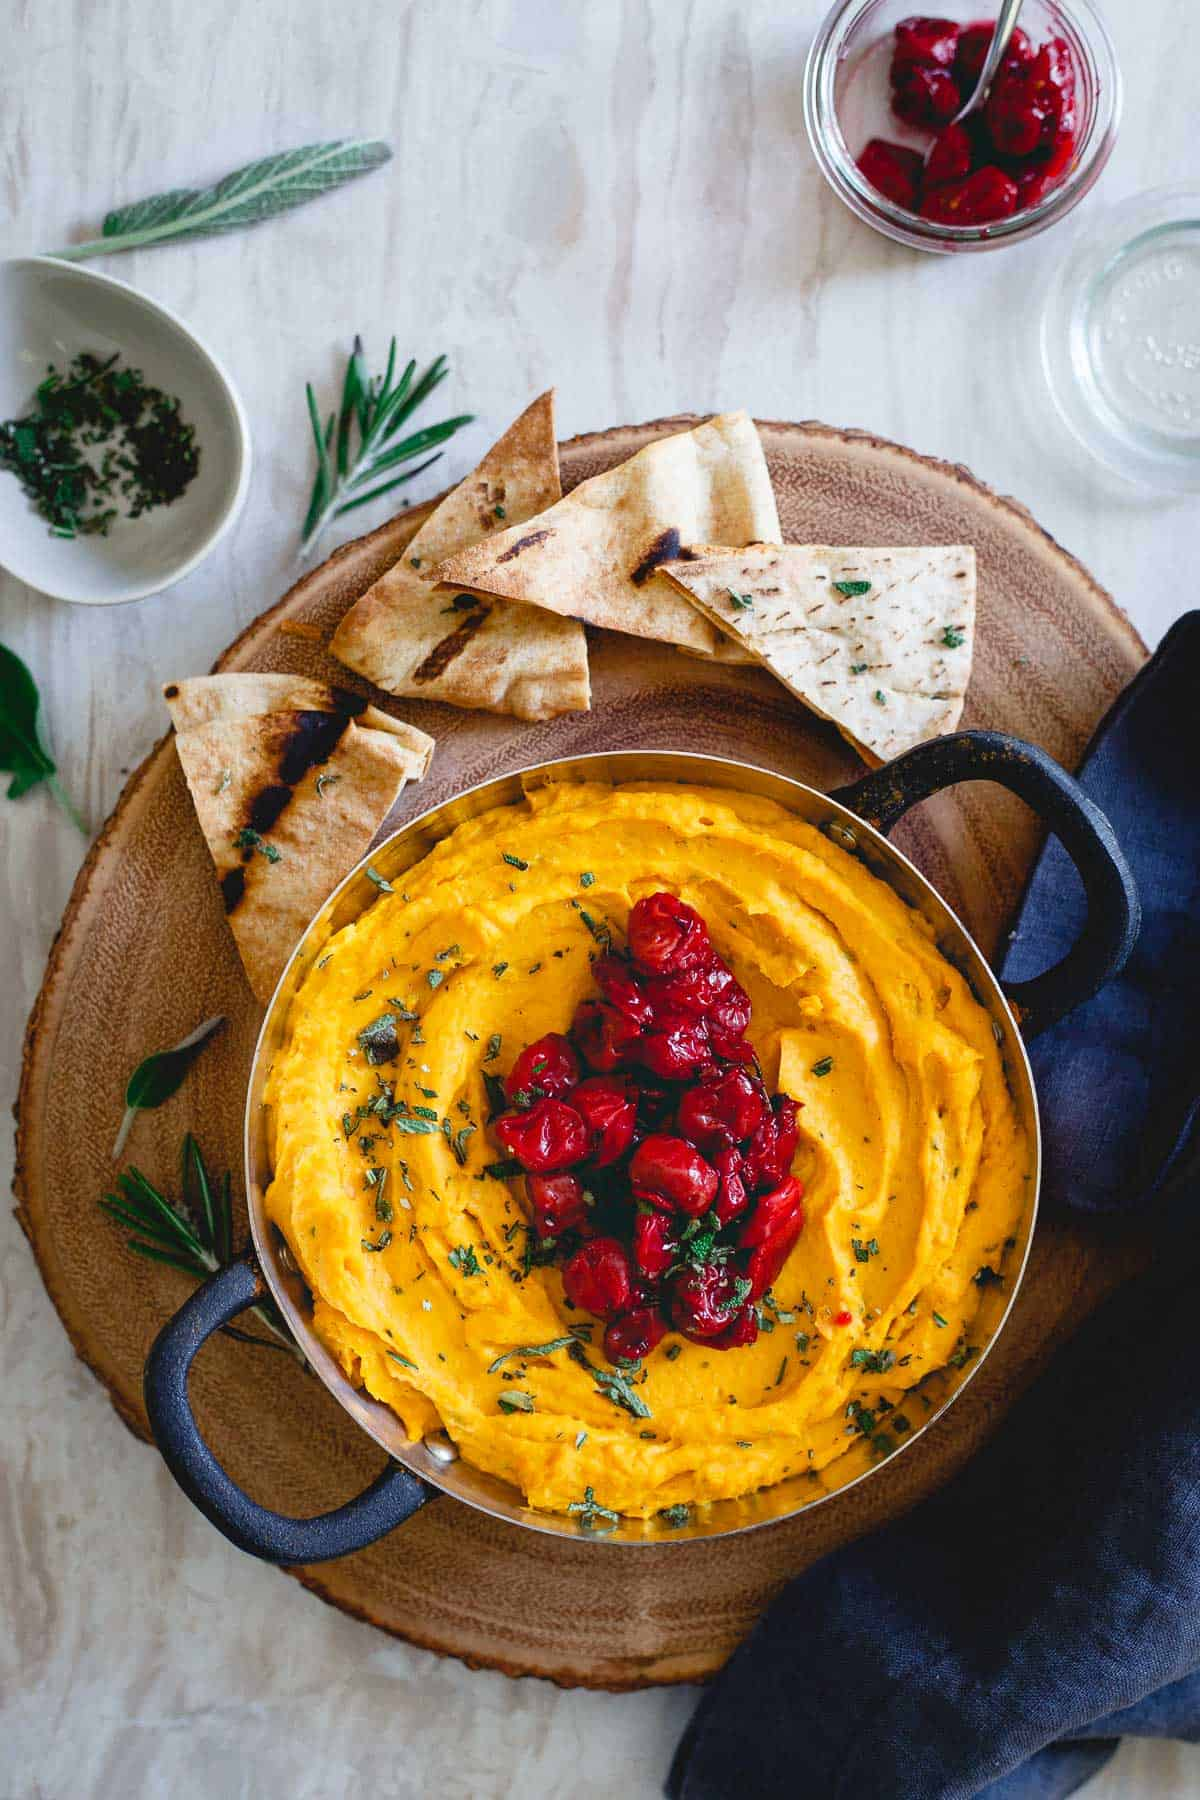 Serve this butternut squash dip with tart cherry compote alongside some toasted pita chips or fresh vegetables for an easy and festive holiday appetizer.